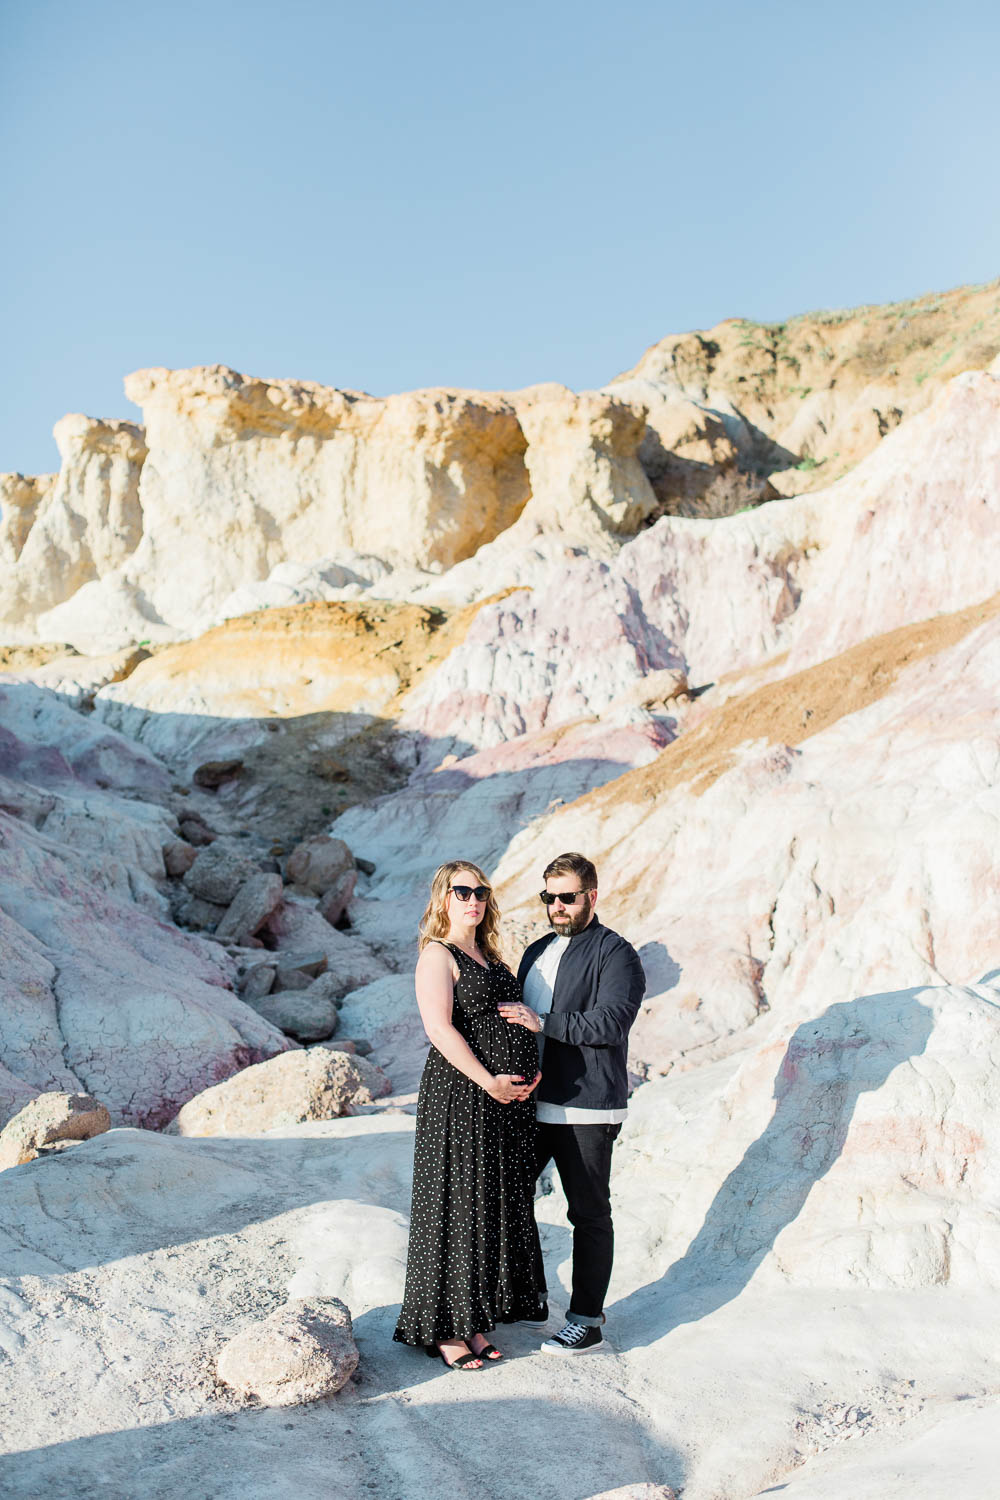 Colorado Maternity Photography Session in the Paint Mines. Wedding and Elopement Photography Company Ashleigh Miller Photography